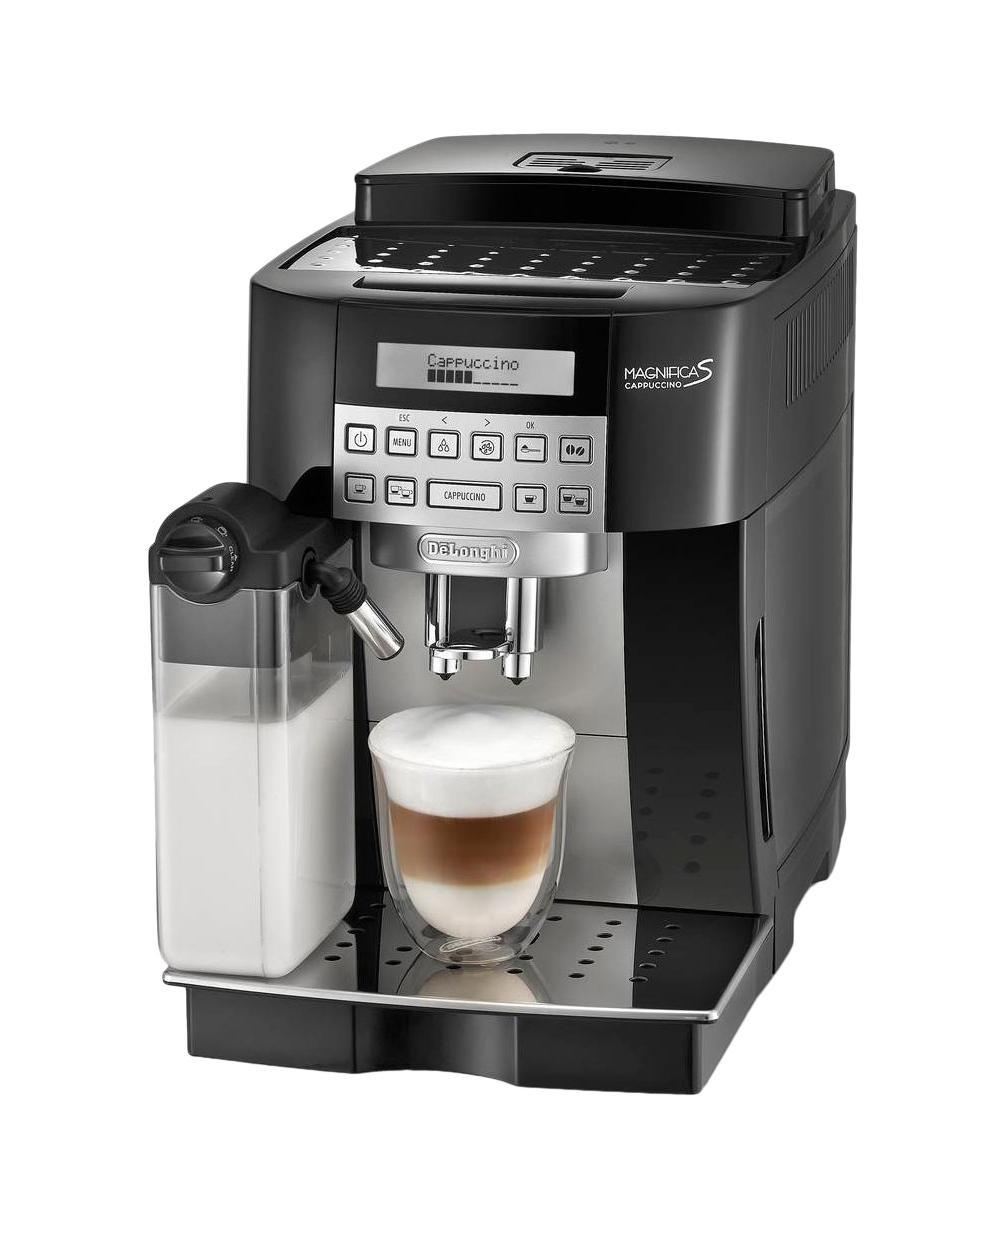 DeLonghi Magnifica ECAM 22.360.B кофемашина delonghi primadonna elite ecam 650 75 ms кофемашина